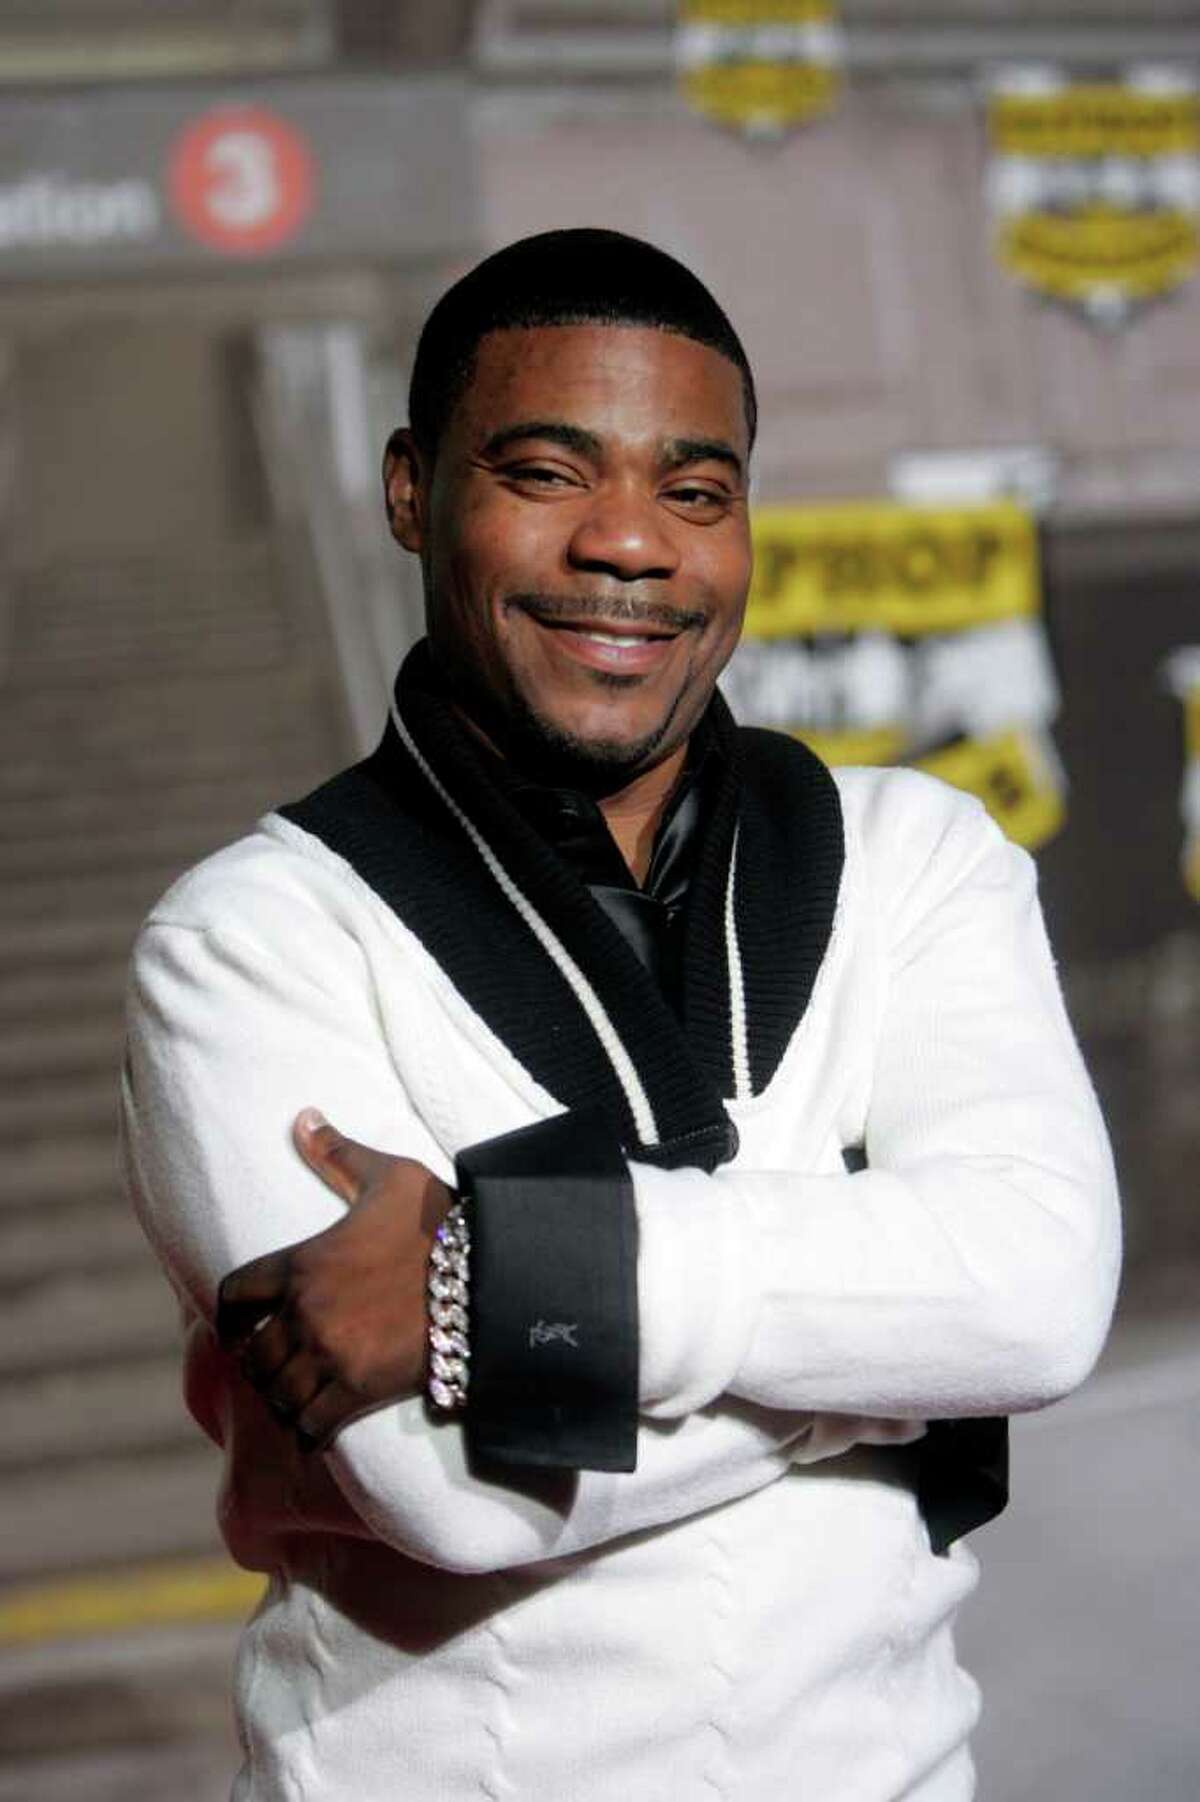 Comedian Tracy Morgan arrives at VH-1 Hip Hop Honors in this Oct. 7, 2006, file photo at the Hammerstein Ballroom in New York. (Gary He / Associated Press file)